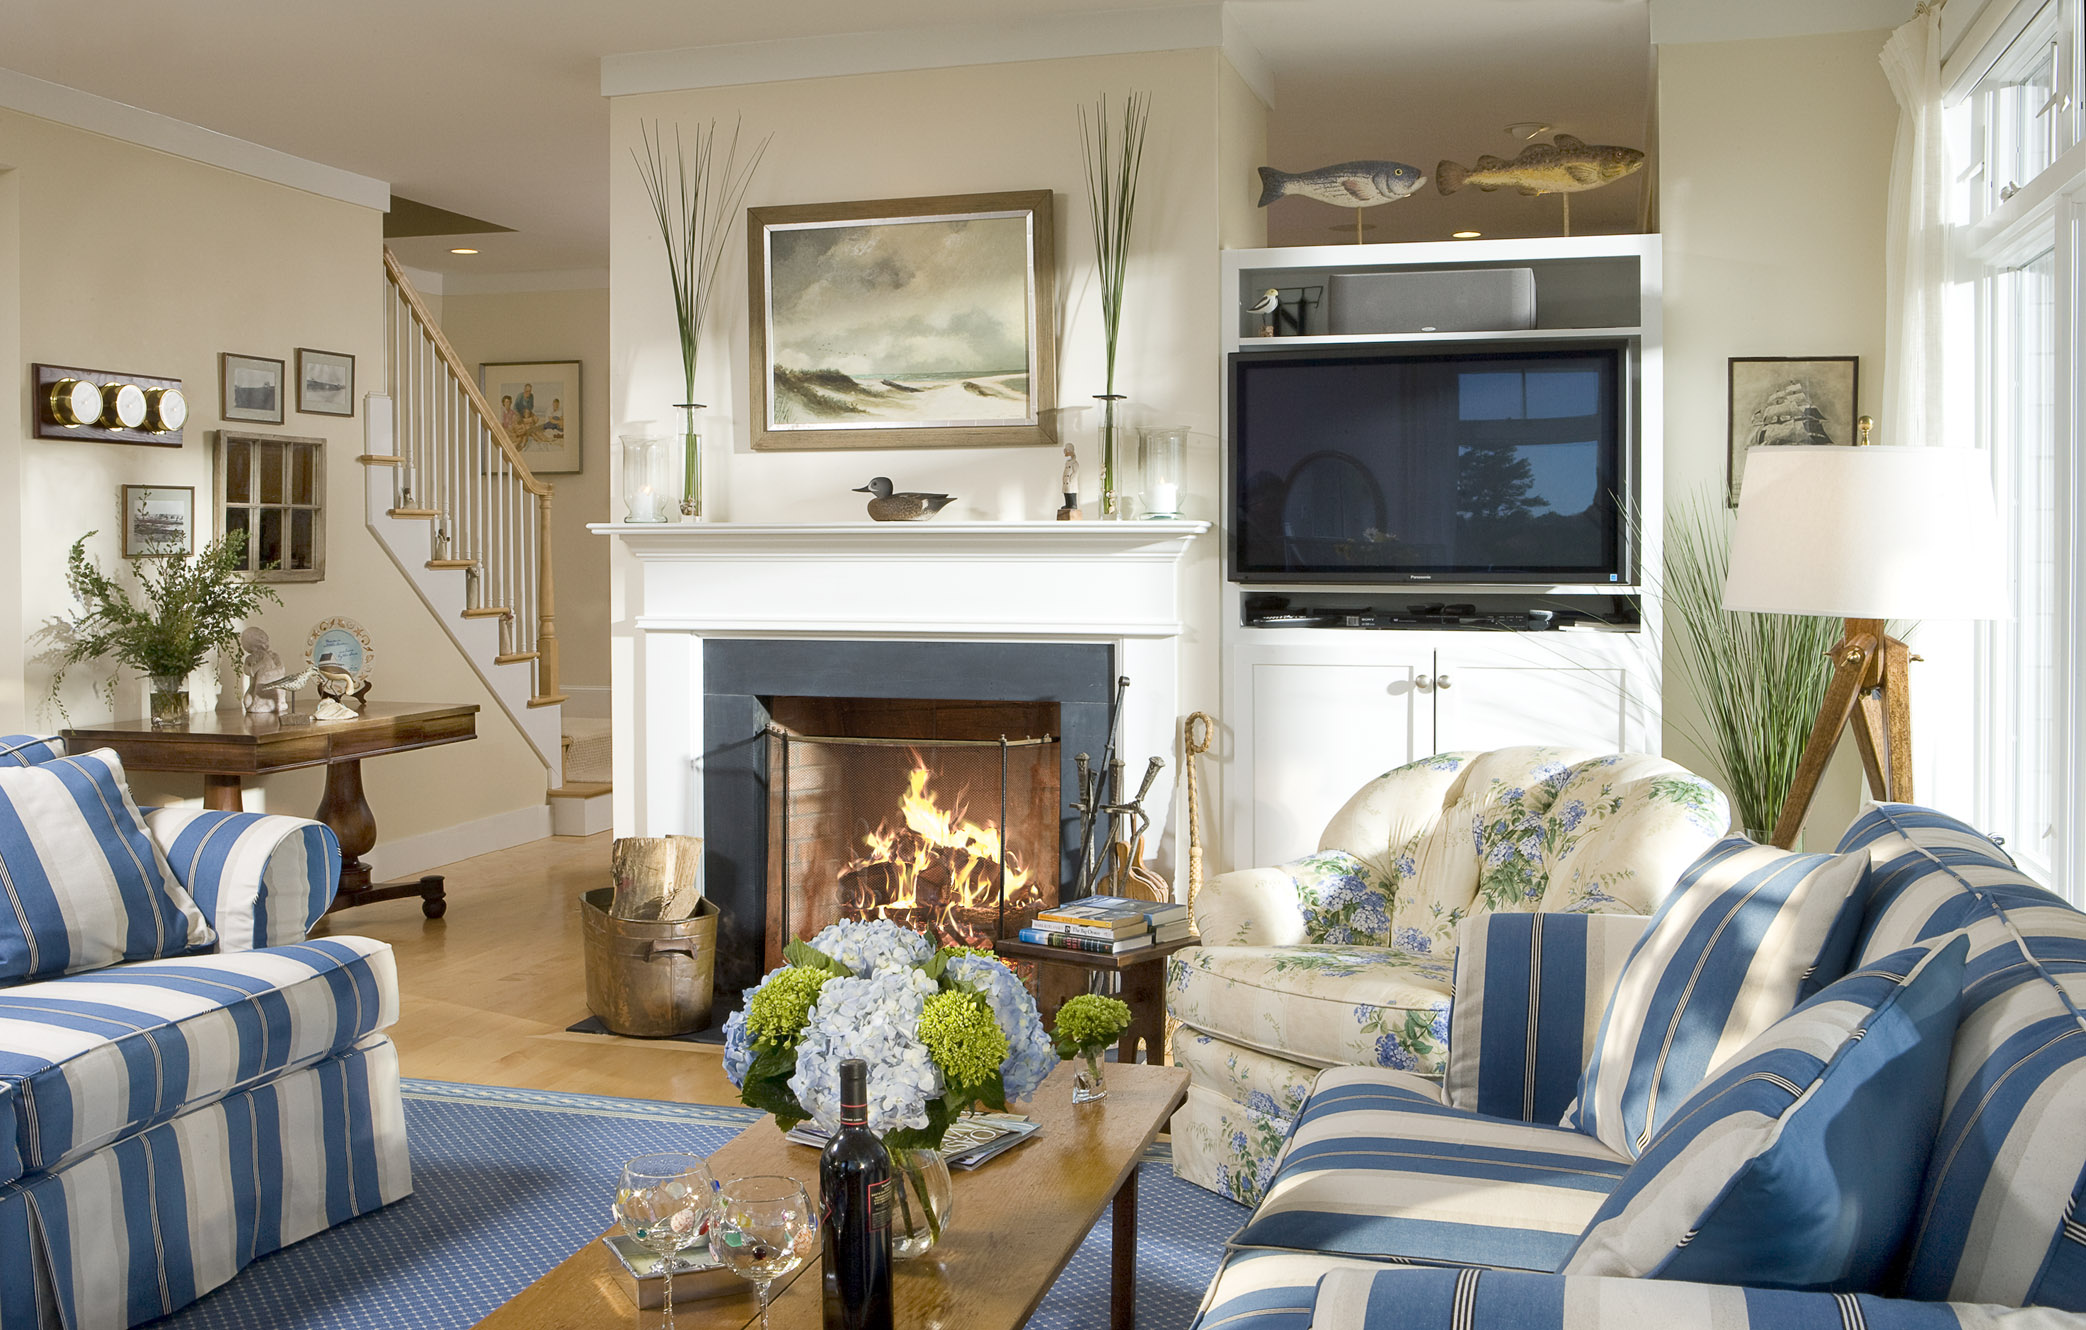 Surprising The Abcs Of Decorating S Is For Small Room Decorating Ideas Largest Home Design Picture Inspirations Pitcheantrous